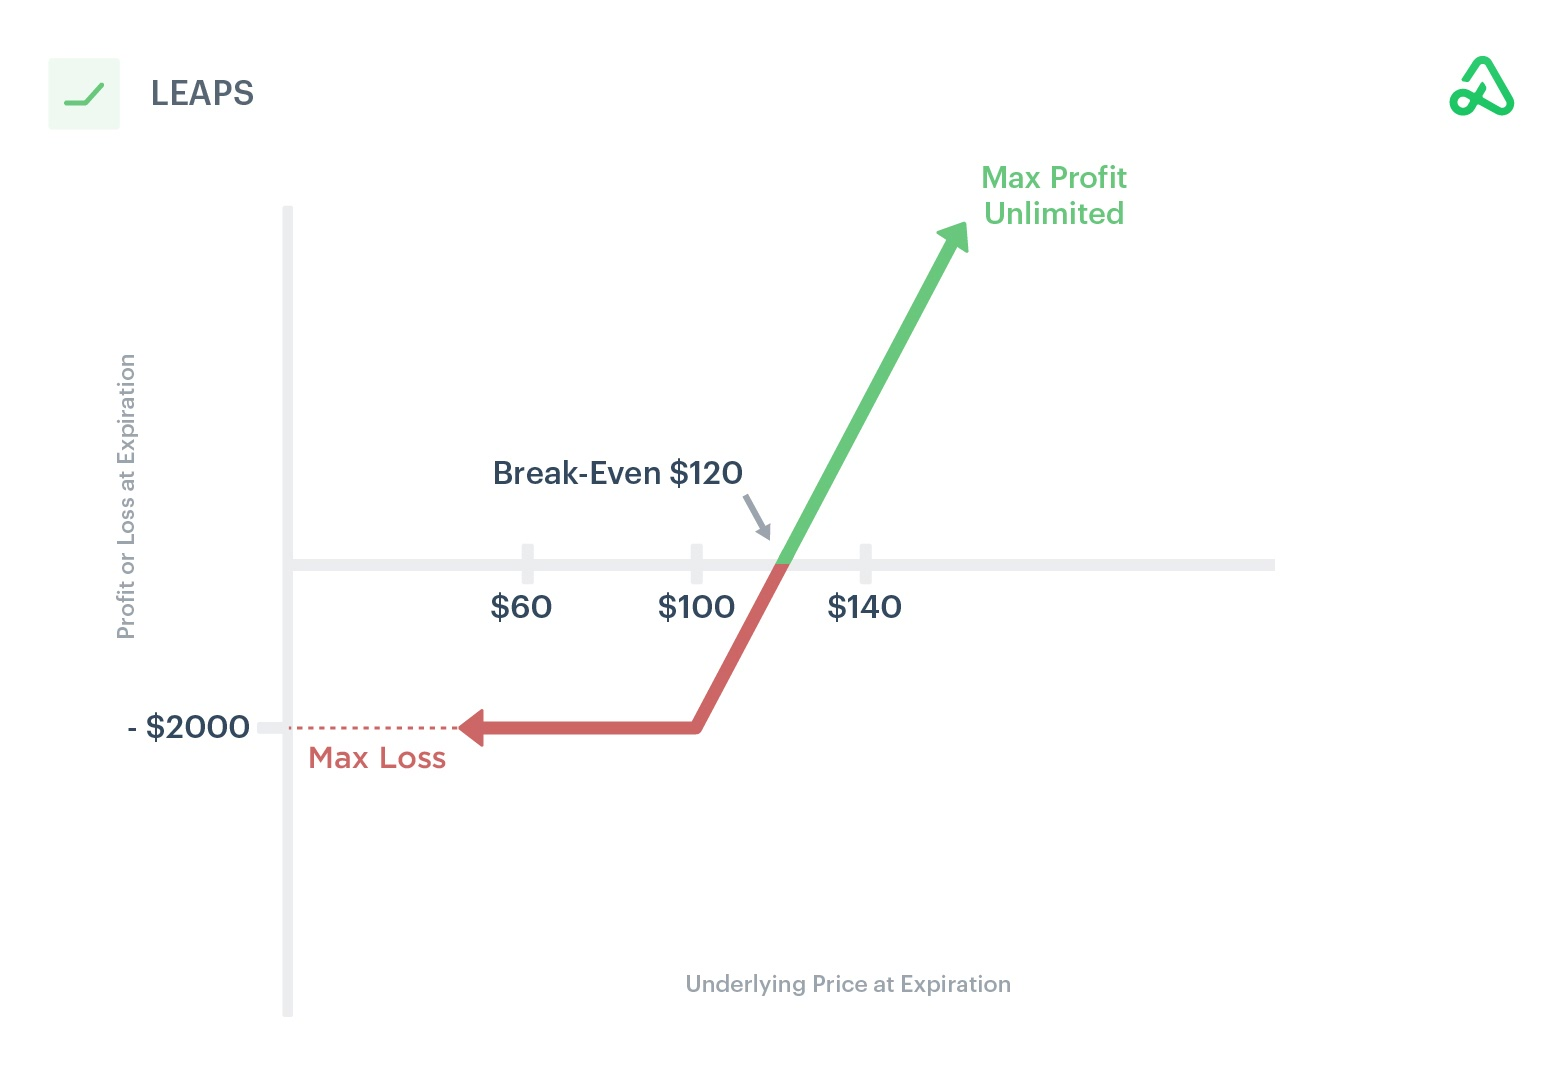 Image of LEAPS payoff diagram showing max profit, max loss, and break-even points